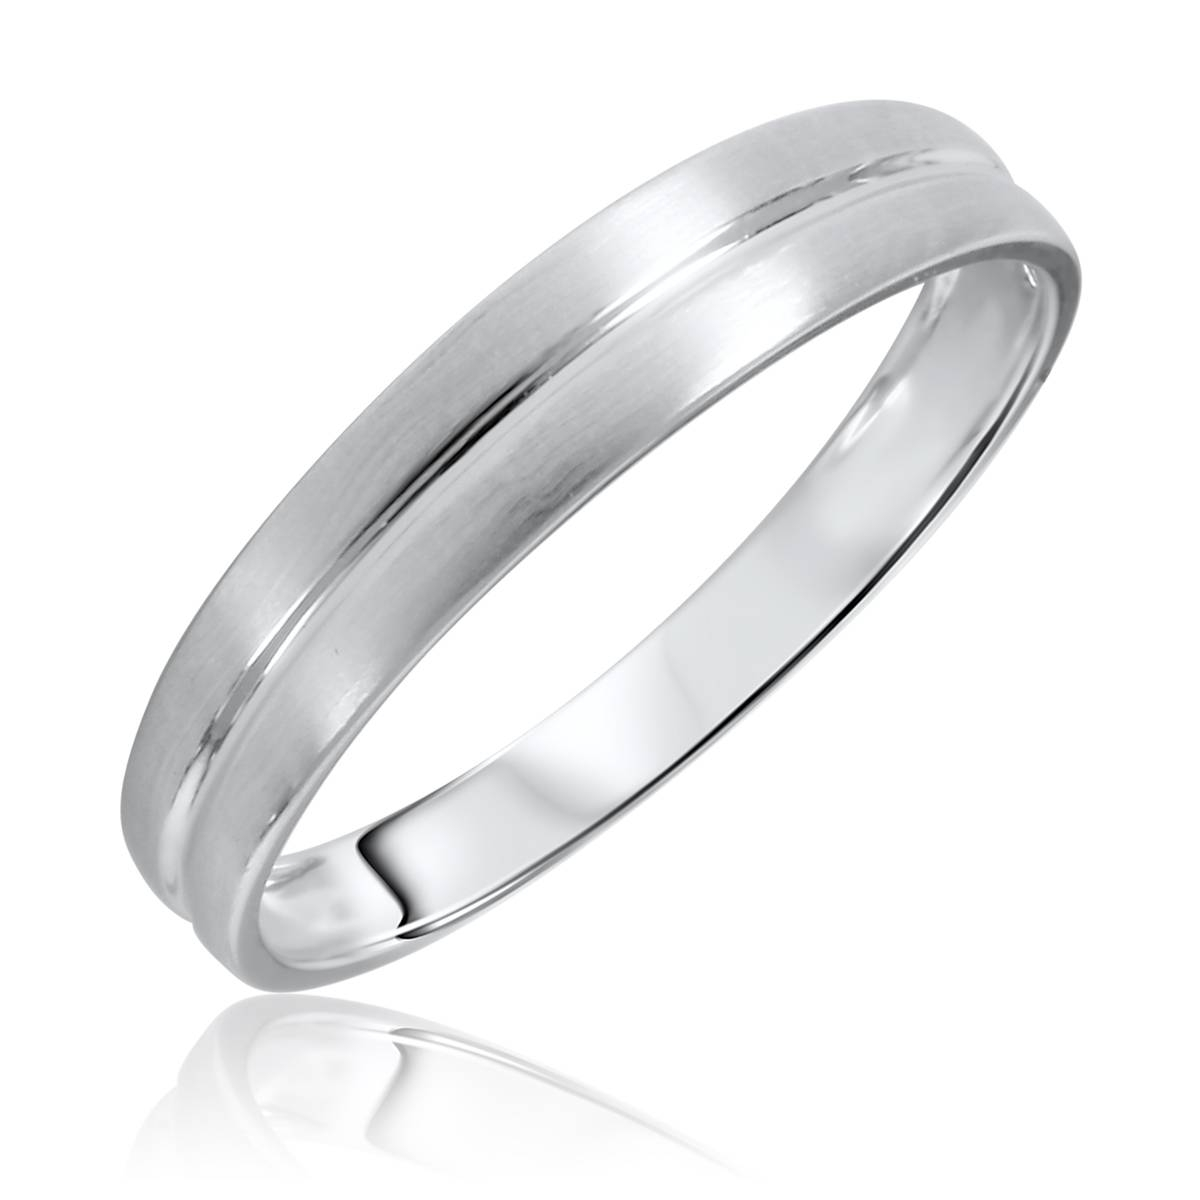 No Diamondstraditional Mens Wedding Band 14K White Gold For White Gold Wedding Bands For Him (View 10 of 15)